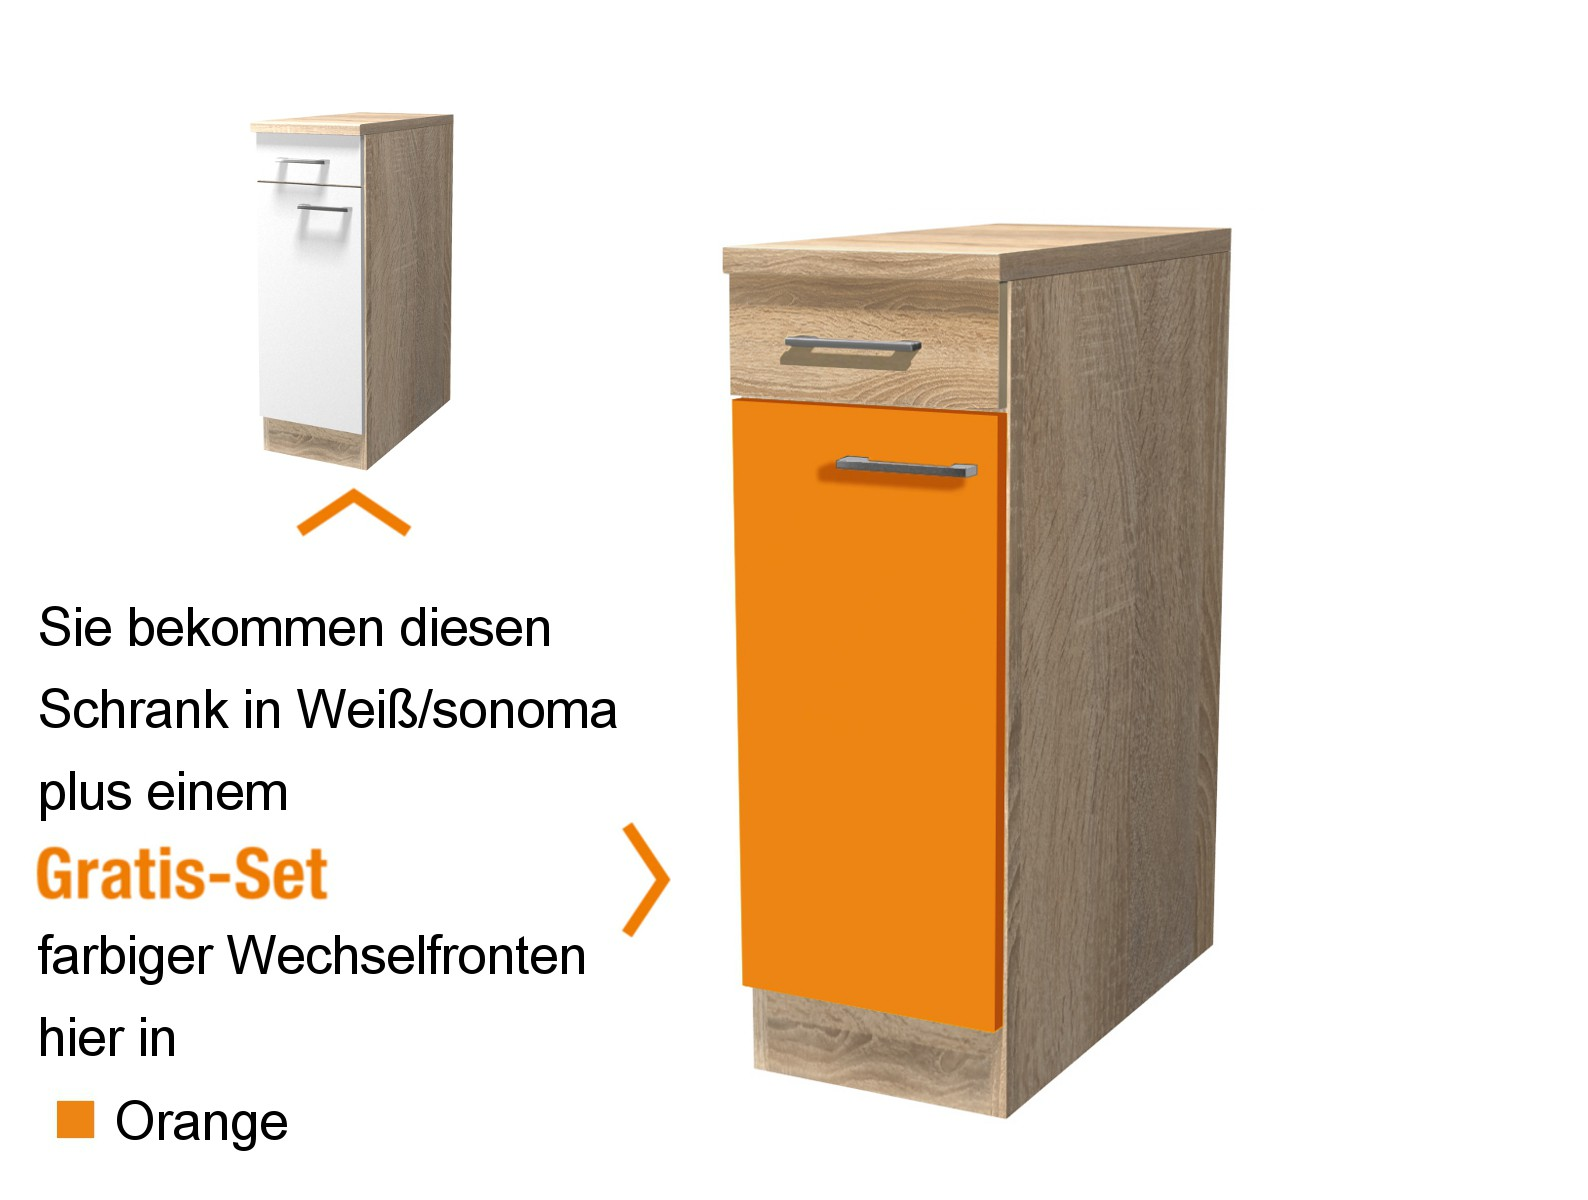 k chen unterschrank rom 1 t rig 30 cm breit orange k che k chen unterschr nke. Black Bedroom Furniture Sets. Home Design Ideas